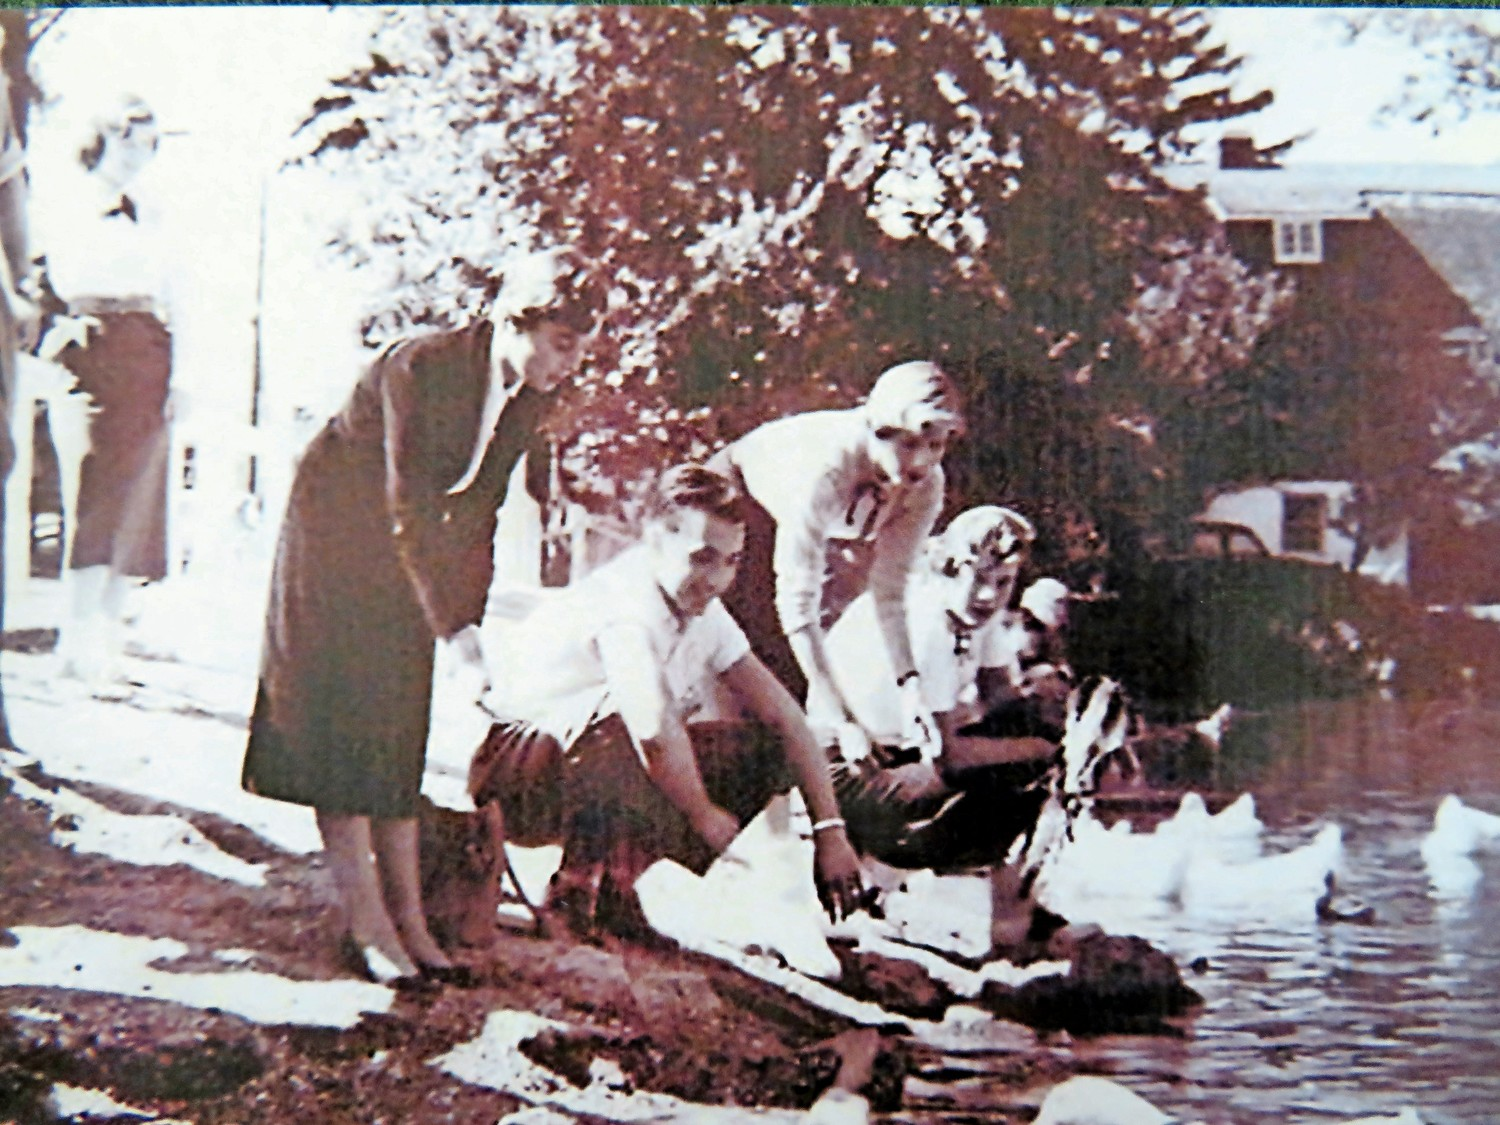 Students would often feed ducks after school at Collin's Pond in the 1950s.